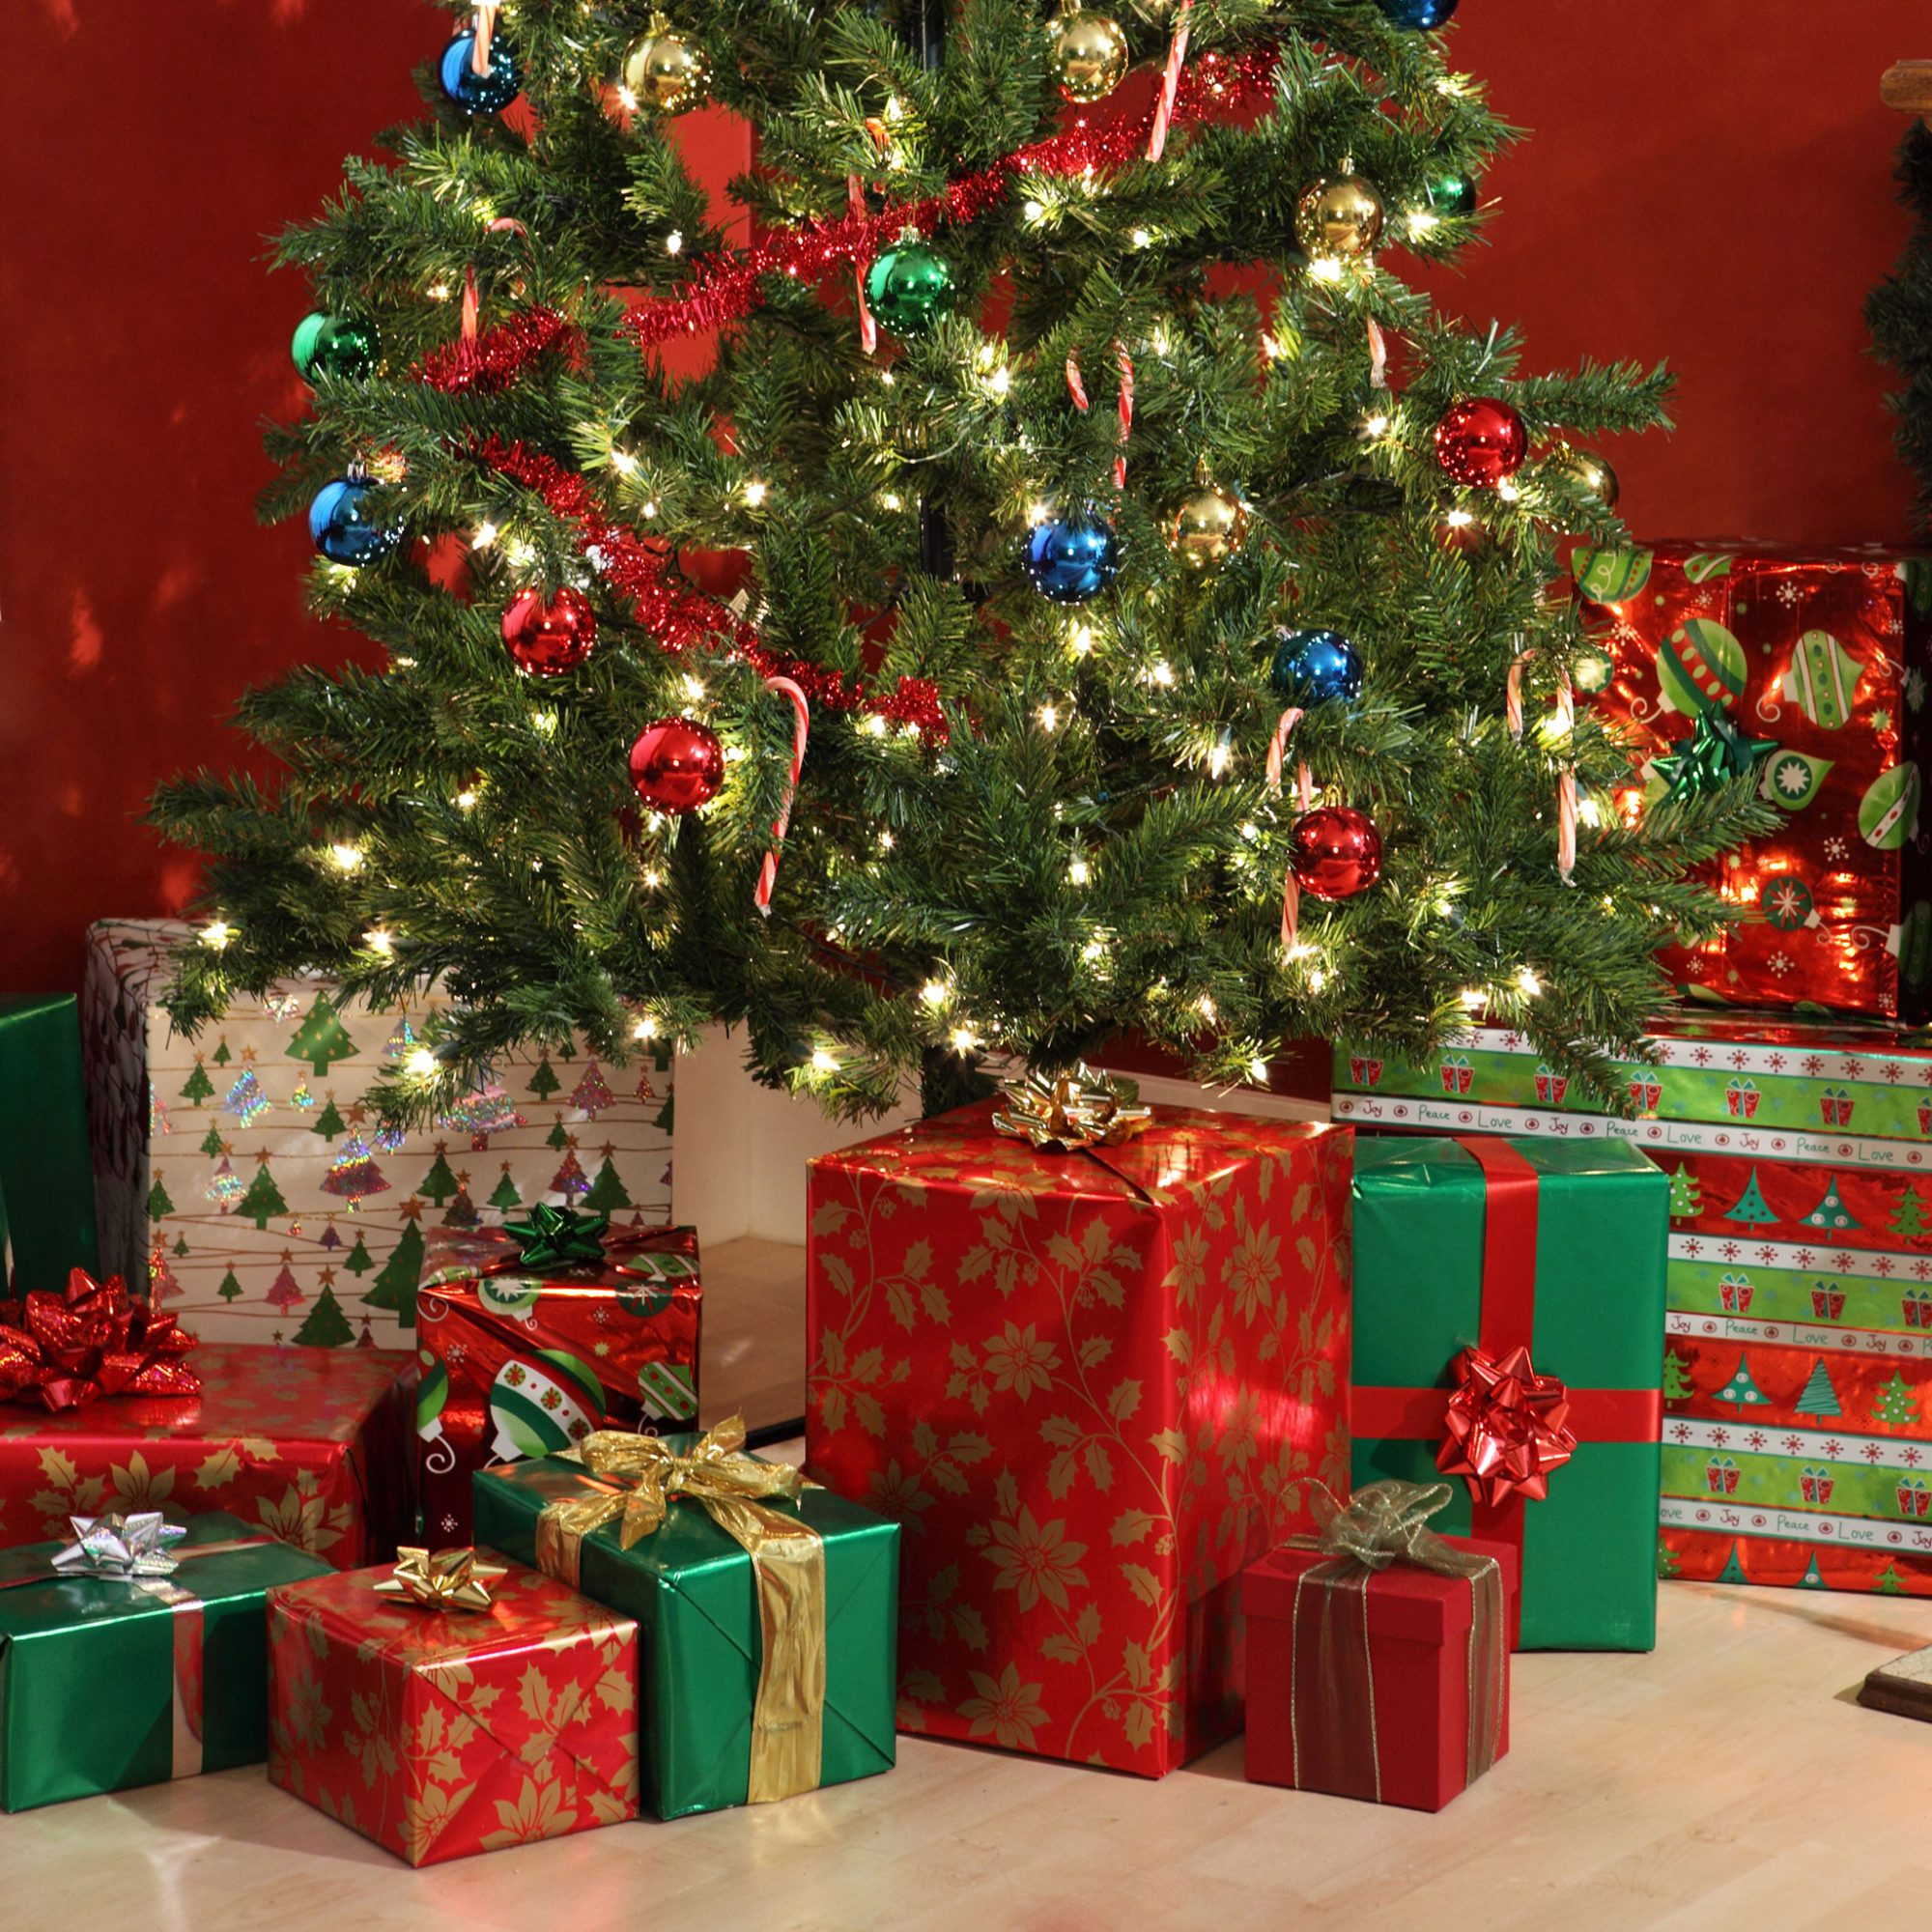 Smart Christmas Trees May Help You Go Green for the Holidays